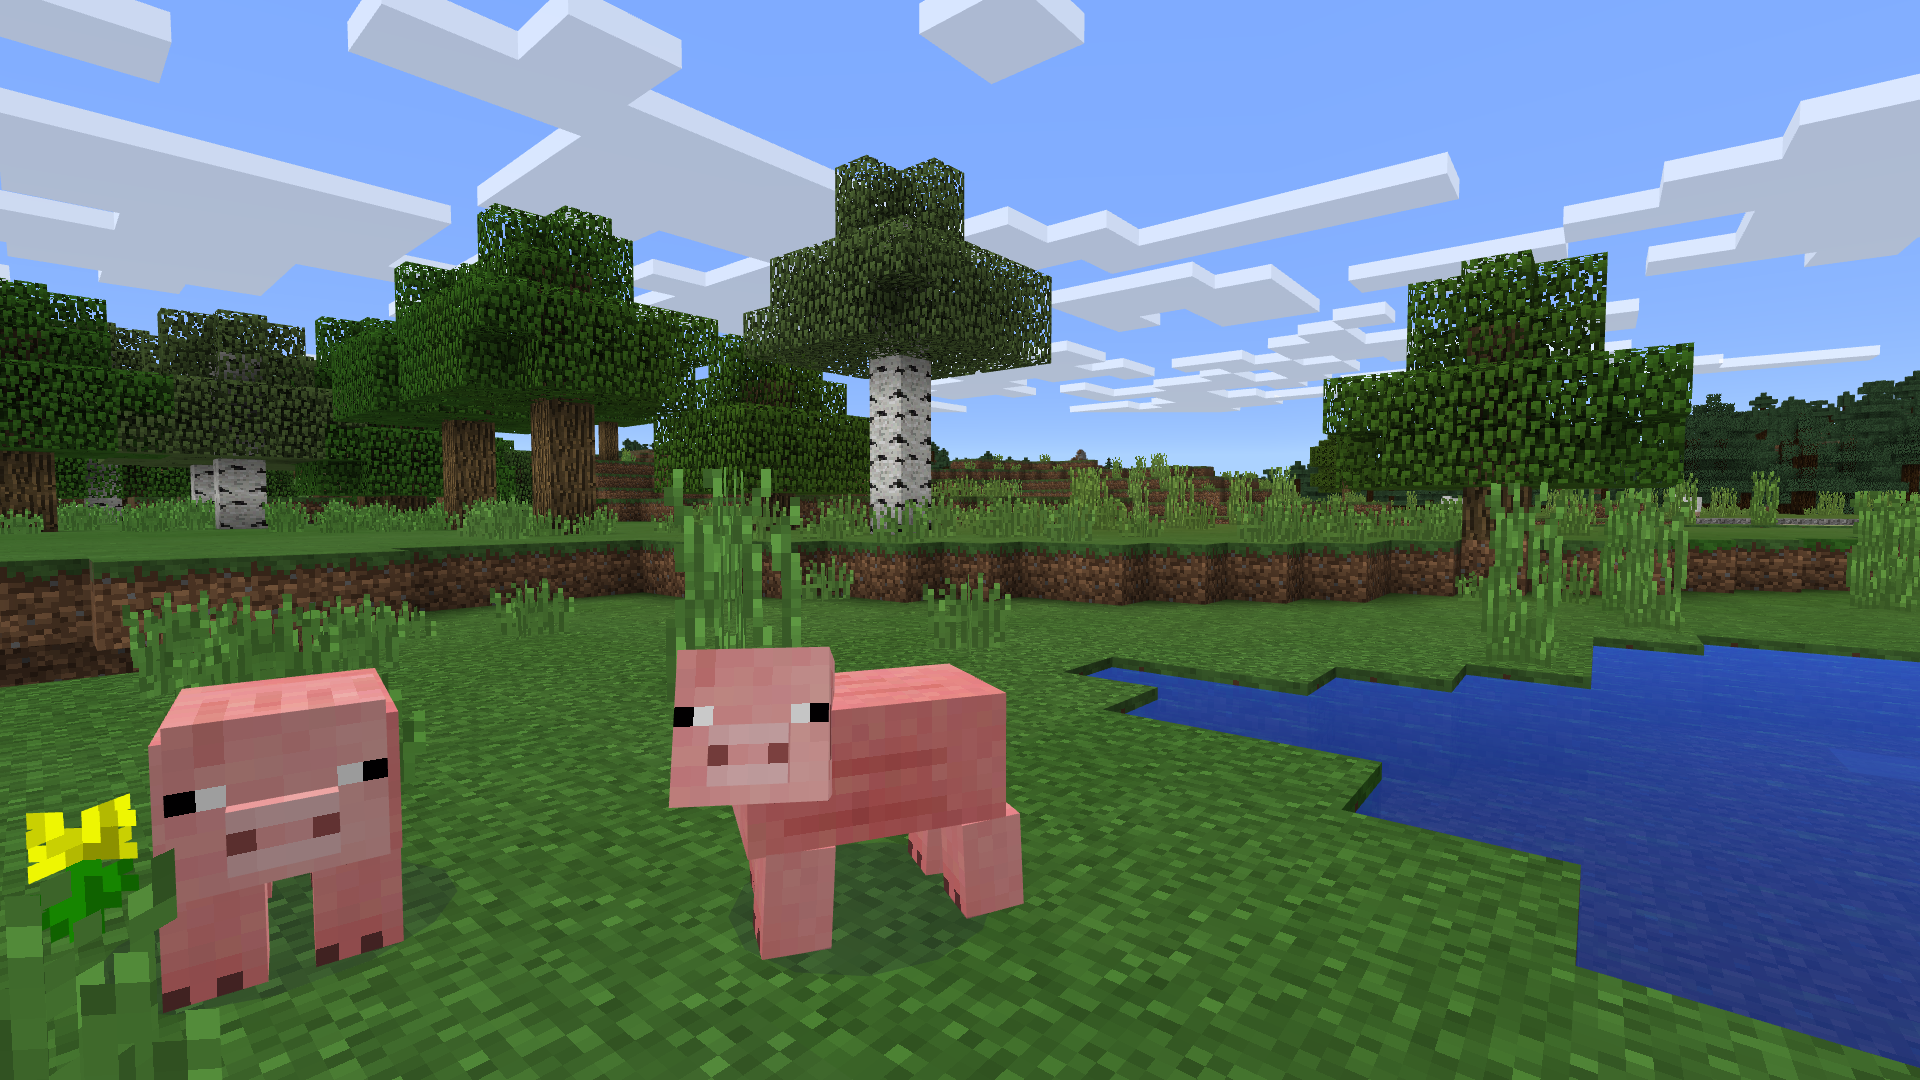 All references to Notch have been removed from Minecraft